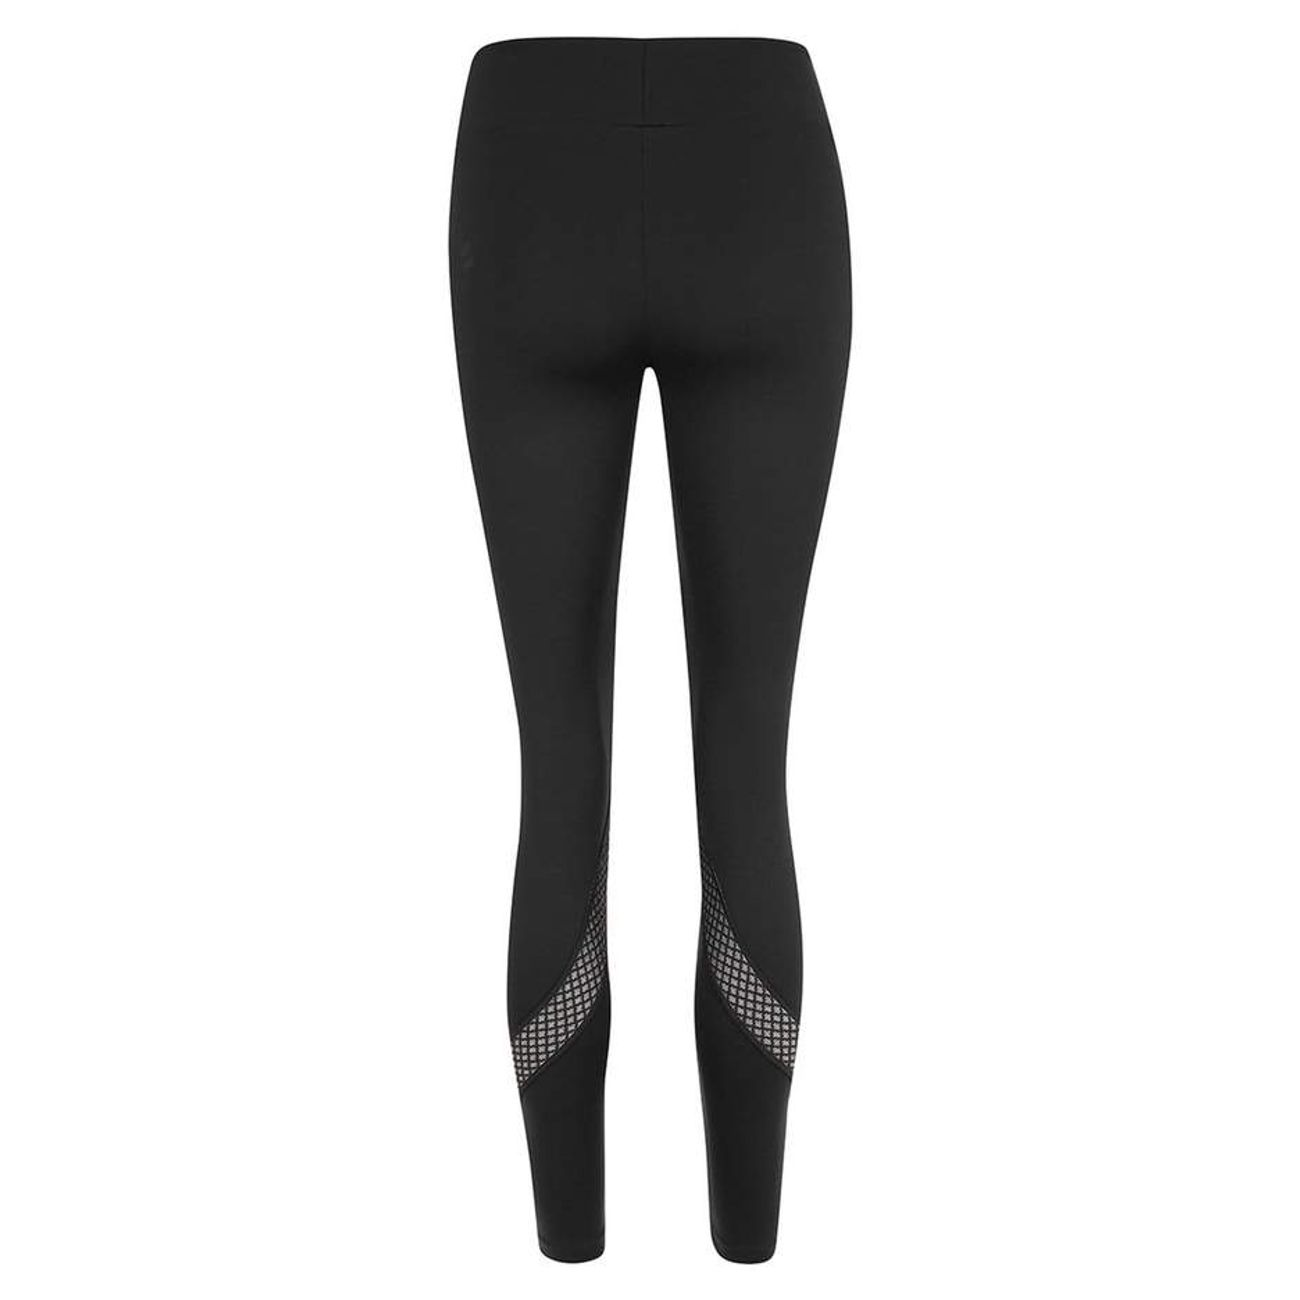 Cardio Fitness femme LAUF Sports Legging Tartan LAUF Sports